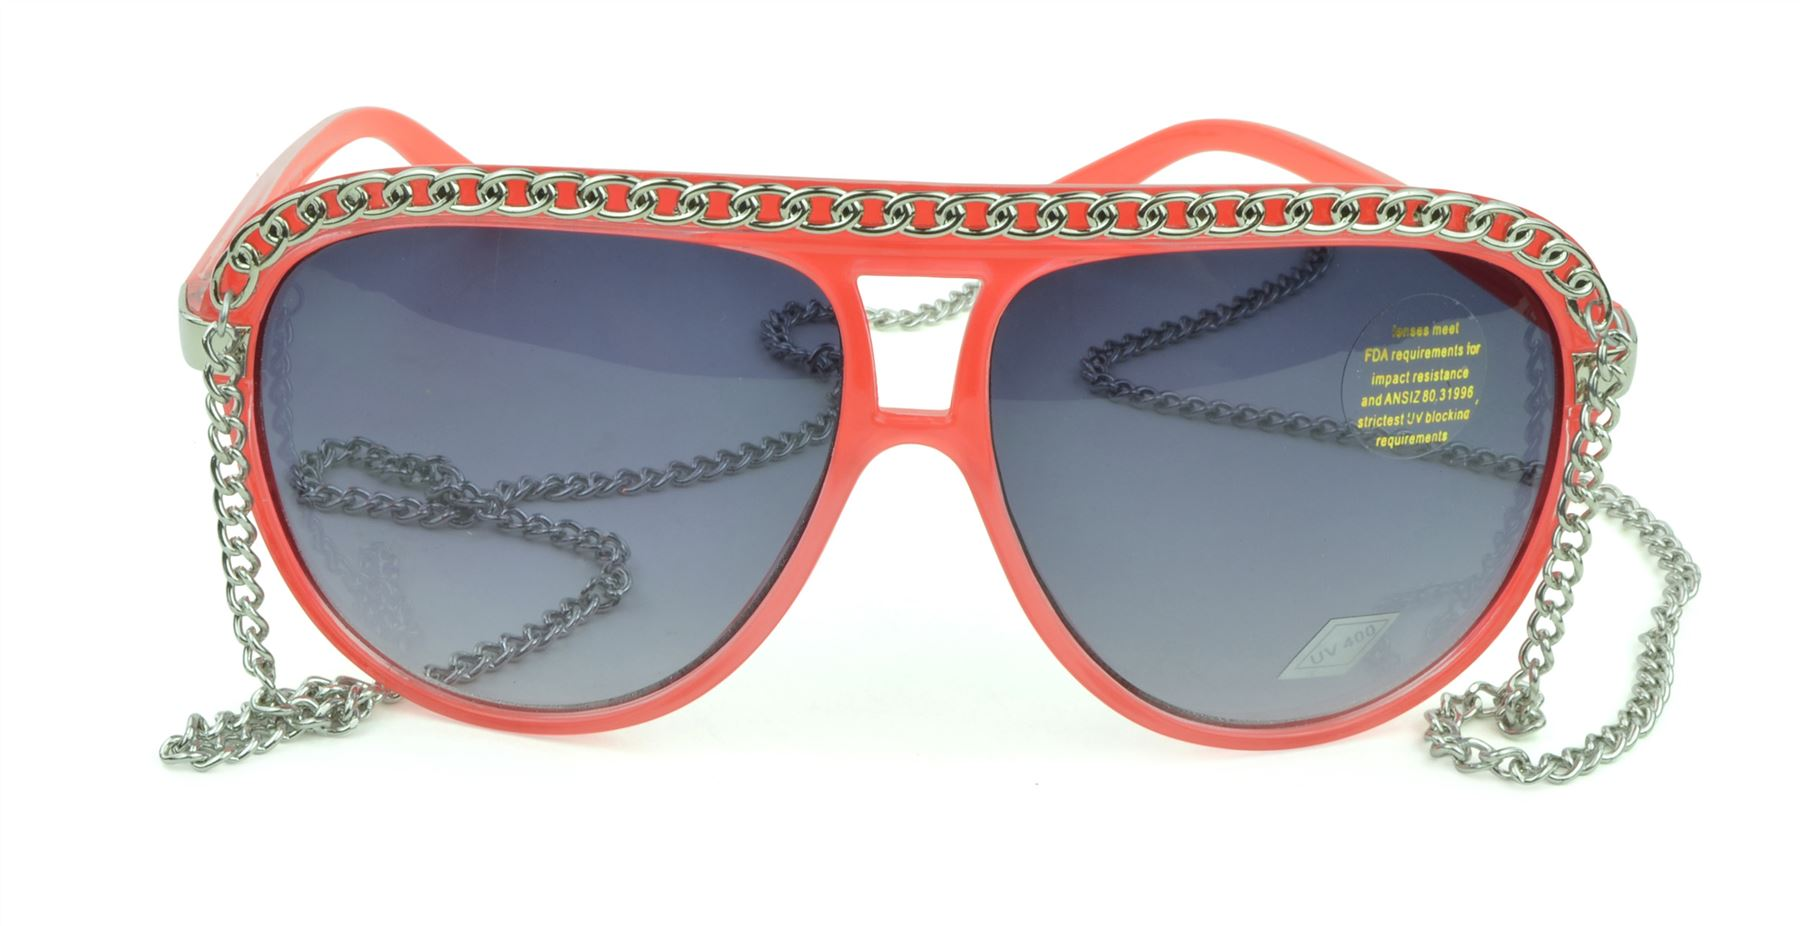 Belle Donne - Women's Hot Celebrity Style Chain Fashion Sunglasses - Watermelon One Size